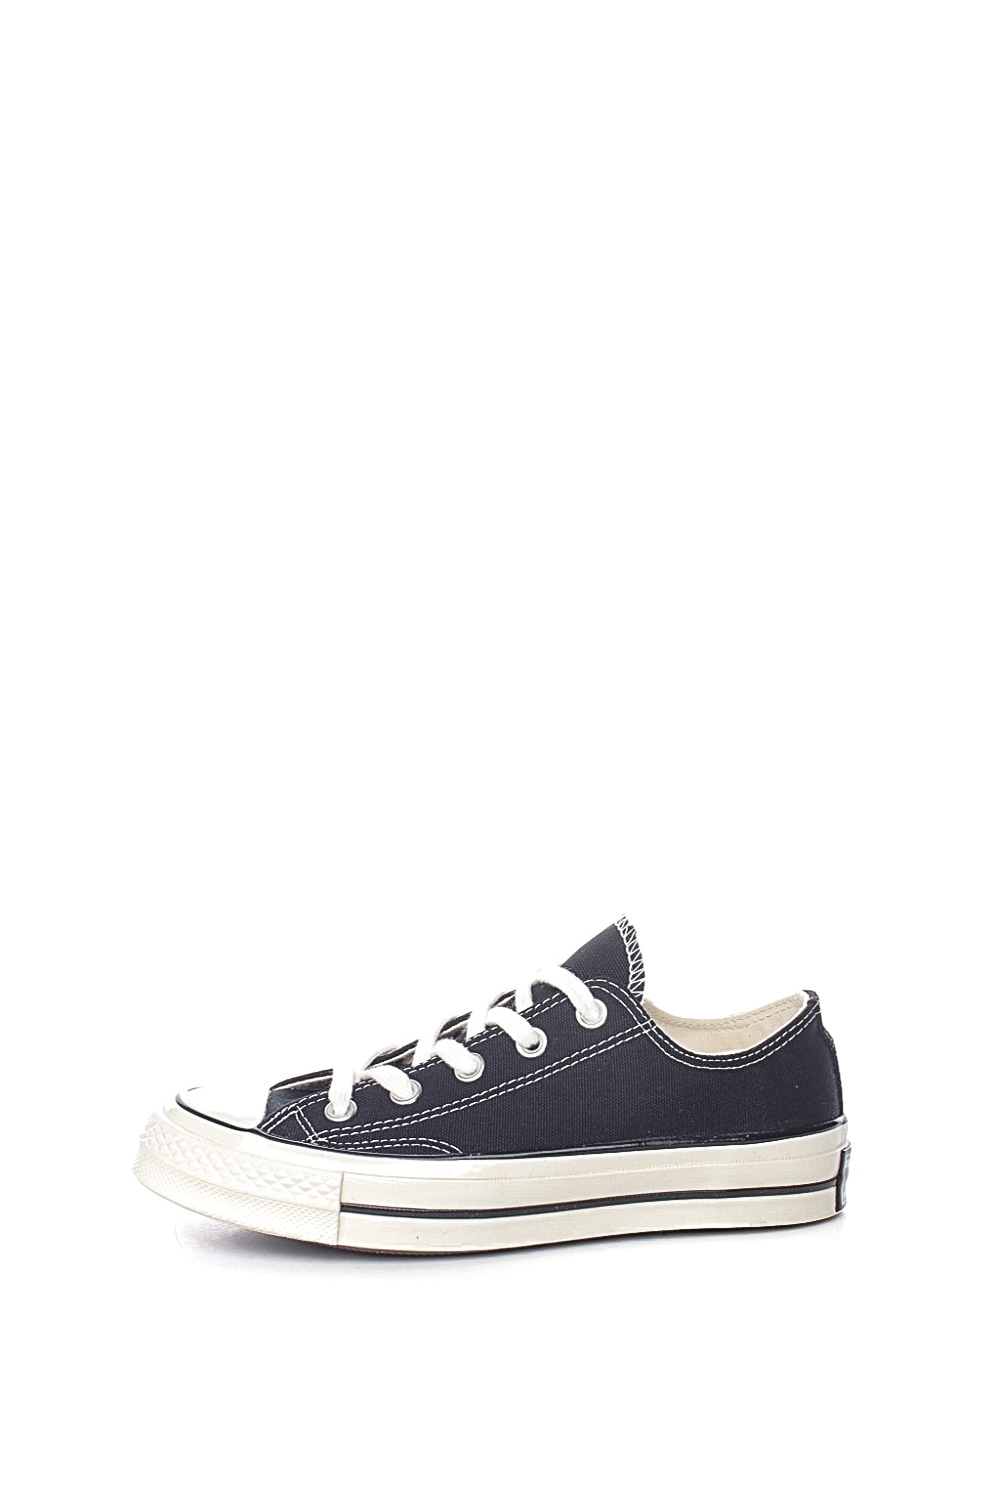 CONVERSE – Unisex sneakers CONVERSE Chuck Taylor All Star Ox 70 μαύρα